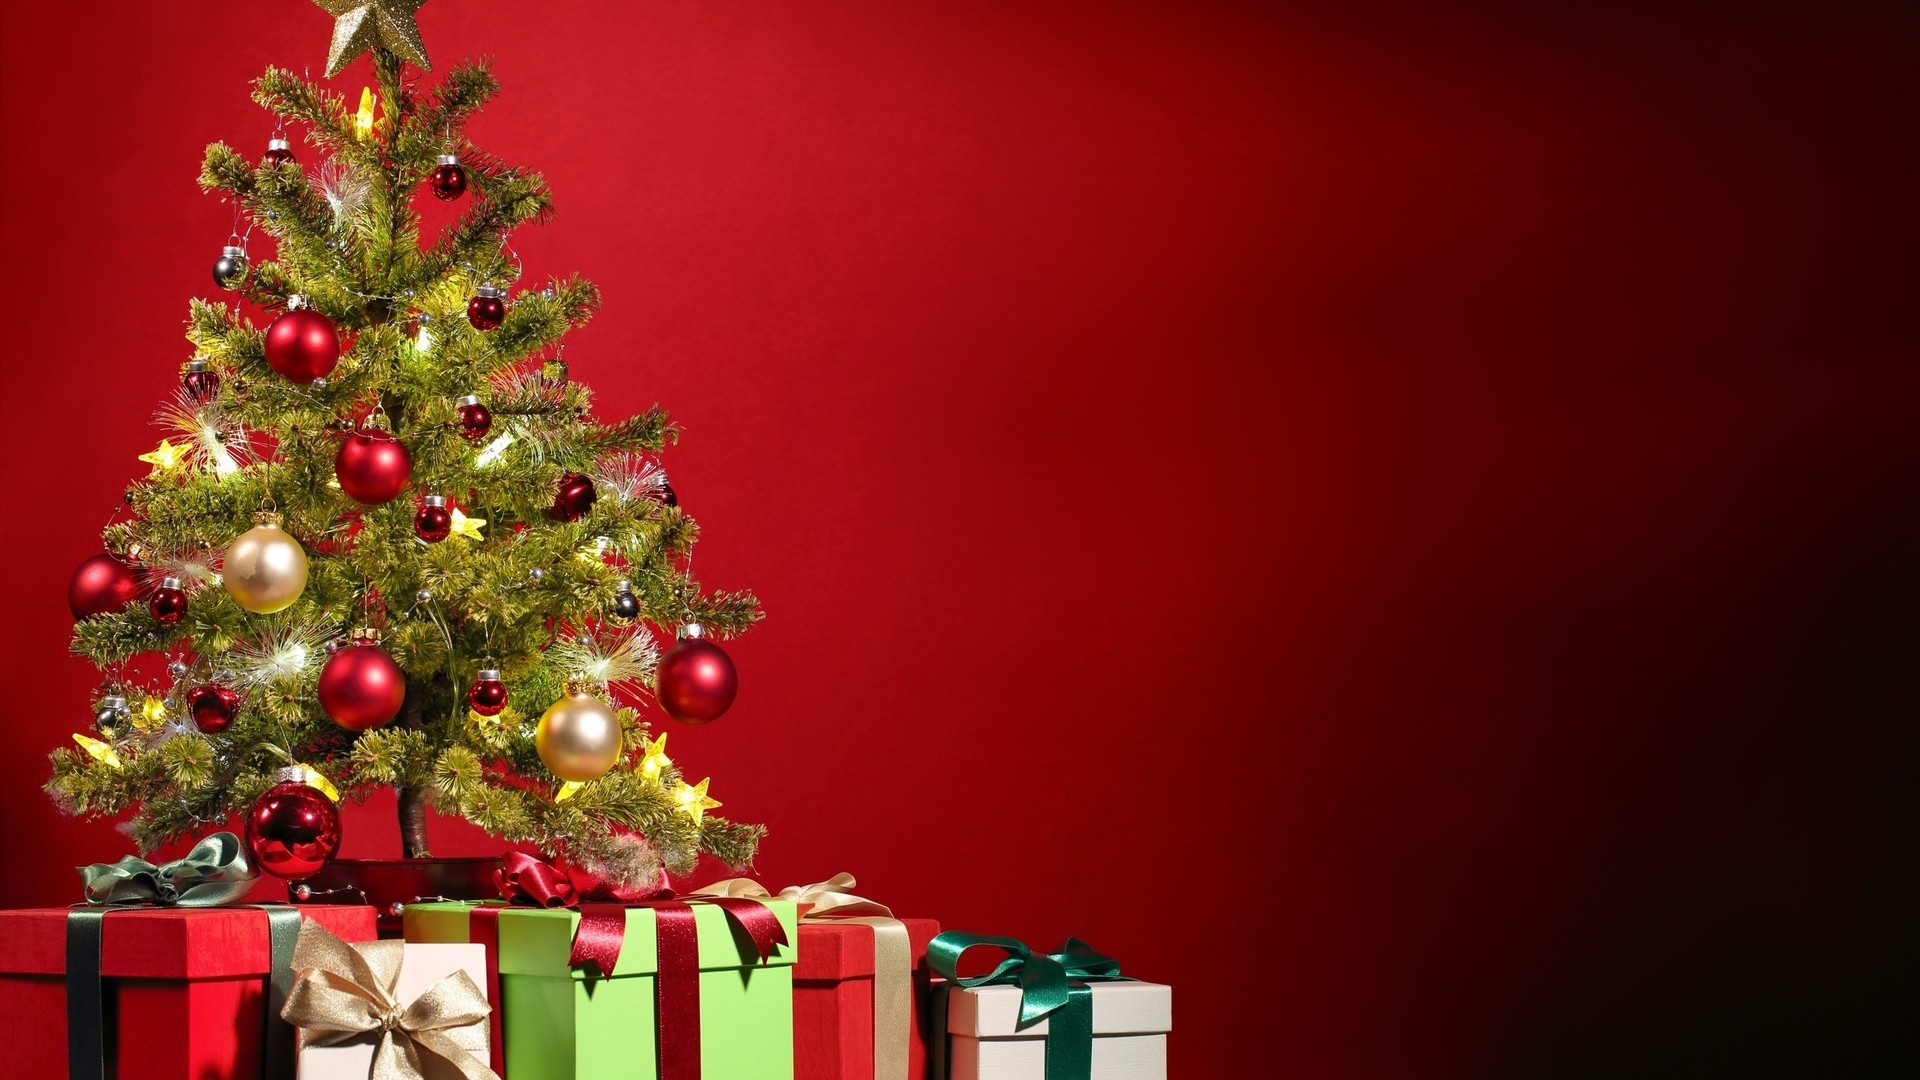 Christmas Hd Wallpapers 1080p.Xmas Wallpaper Download Free Awesome Wallpapers For